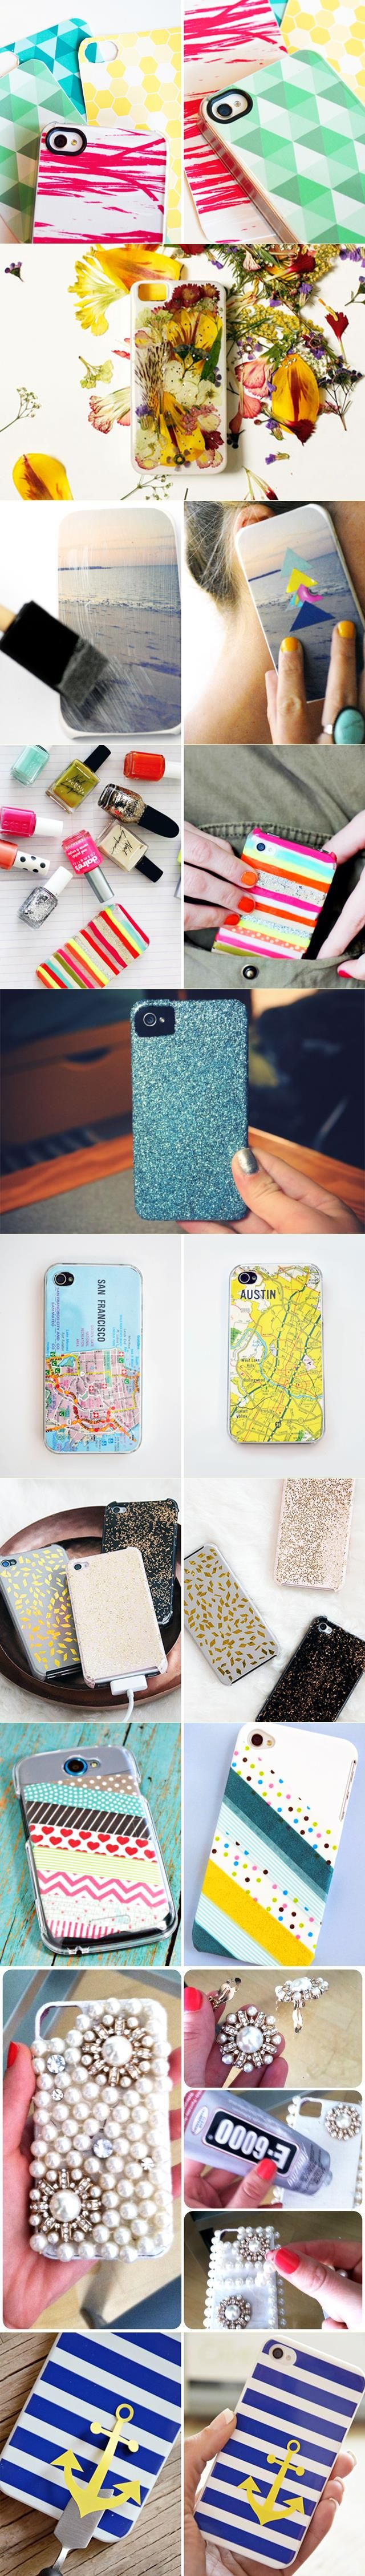 Cases for iPhone | DIY Stuff